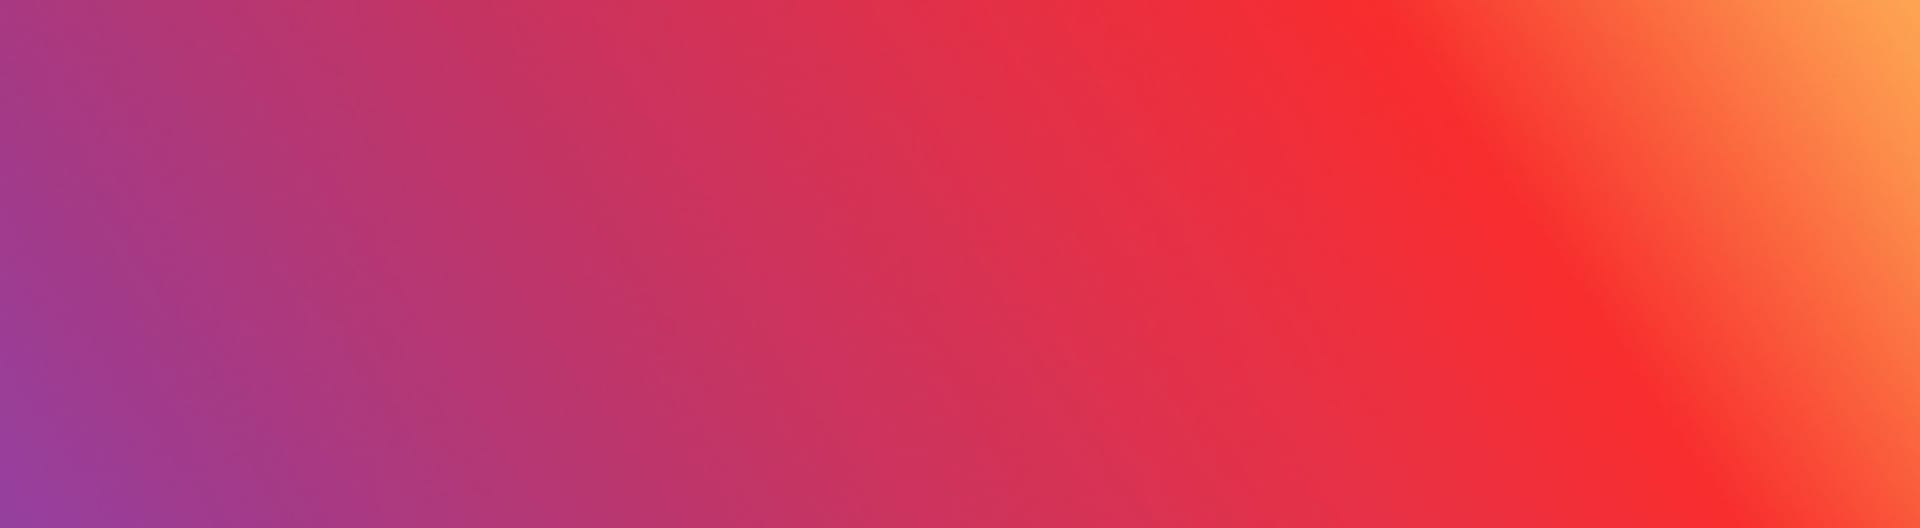 Instagram background colours of orange, red and purple